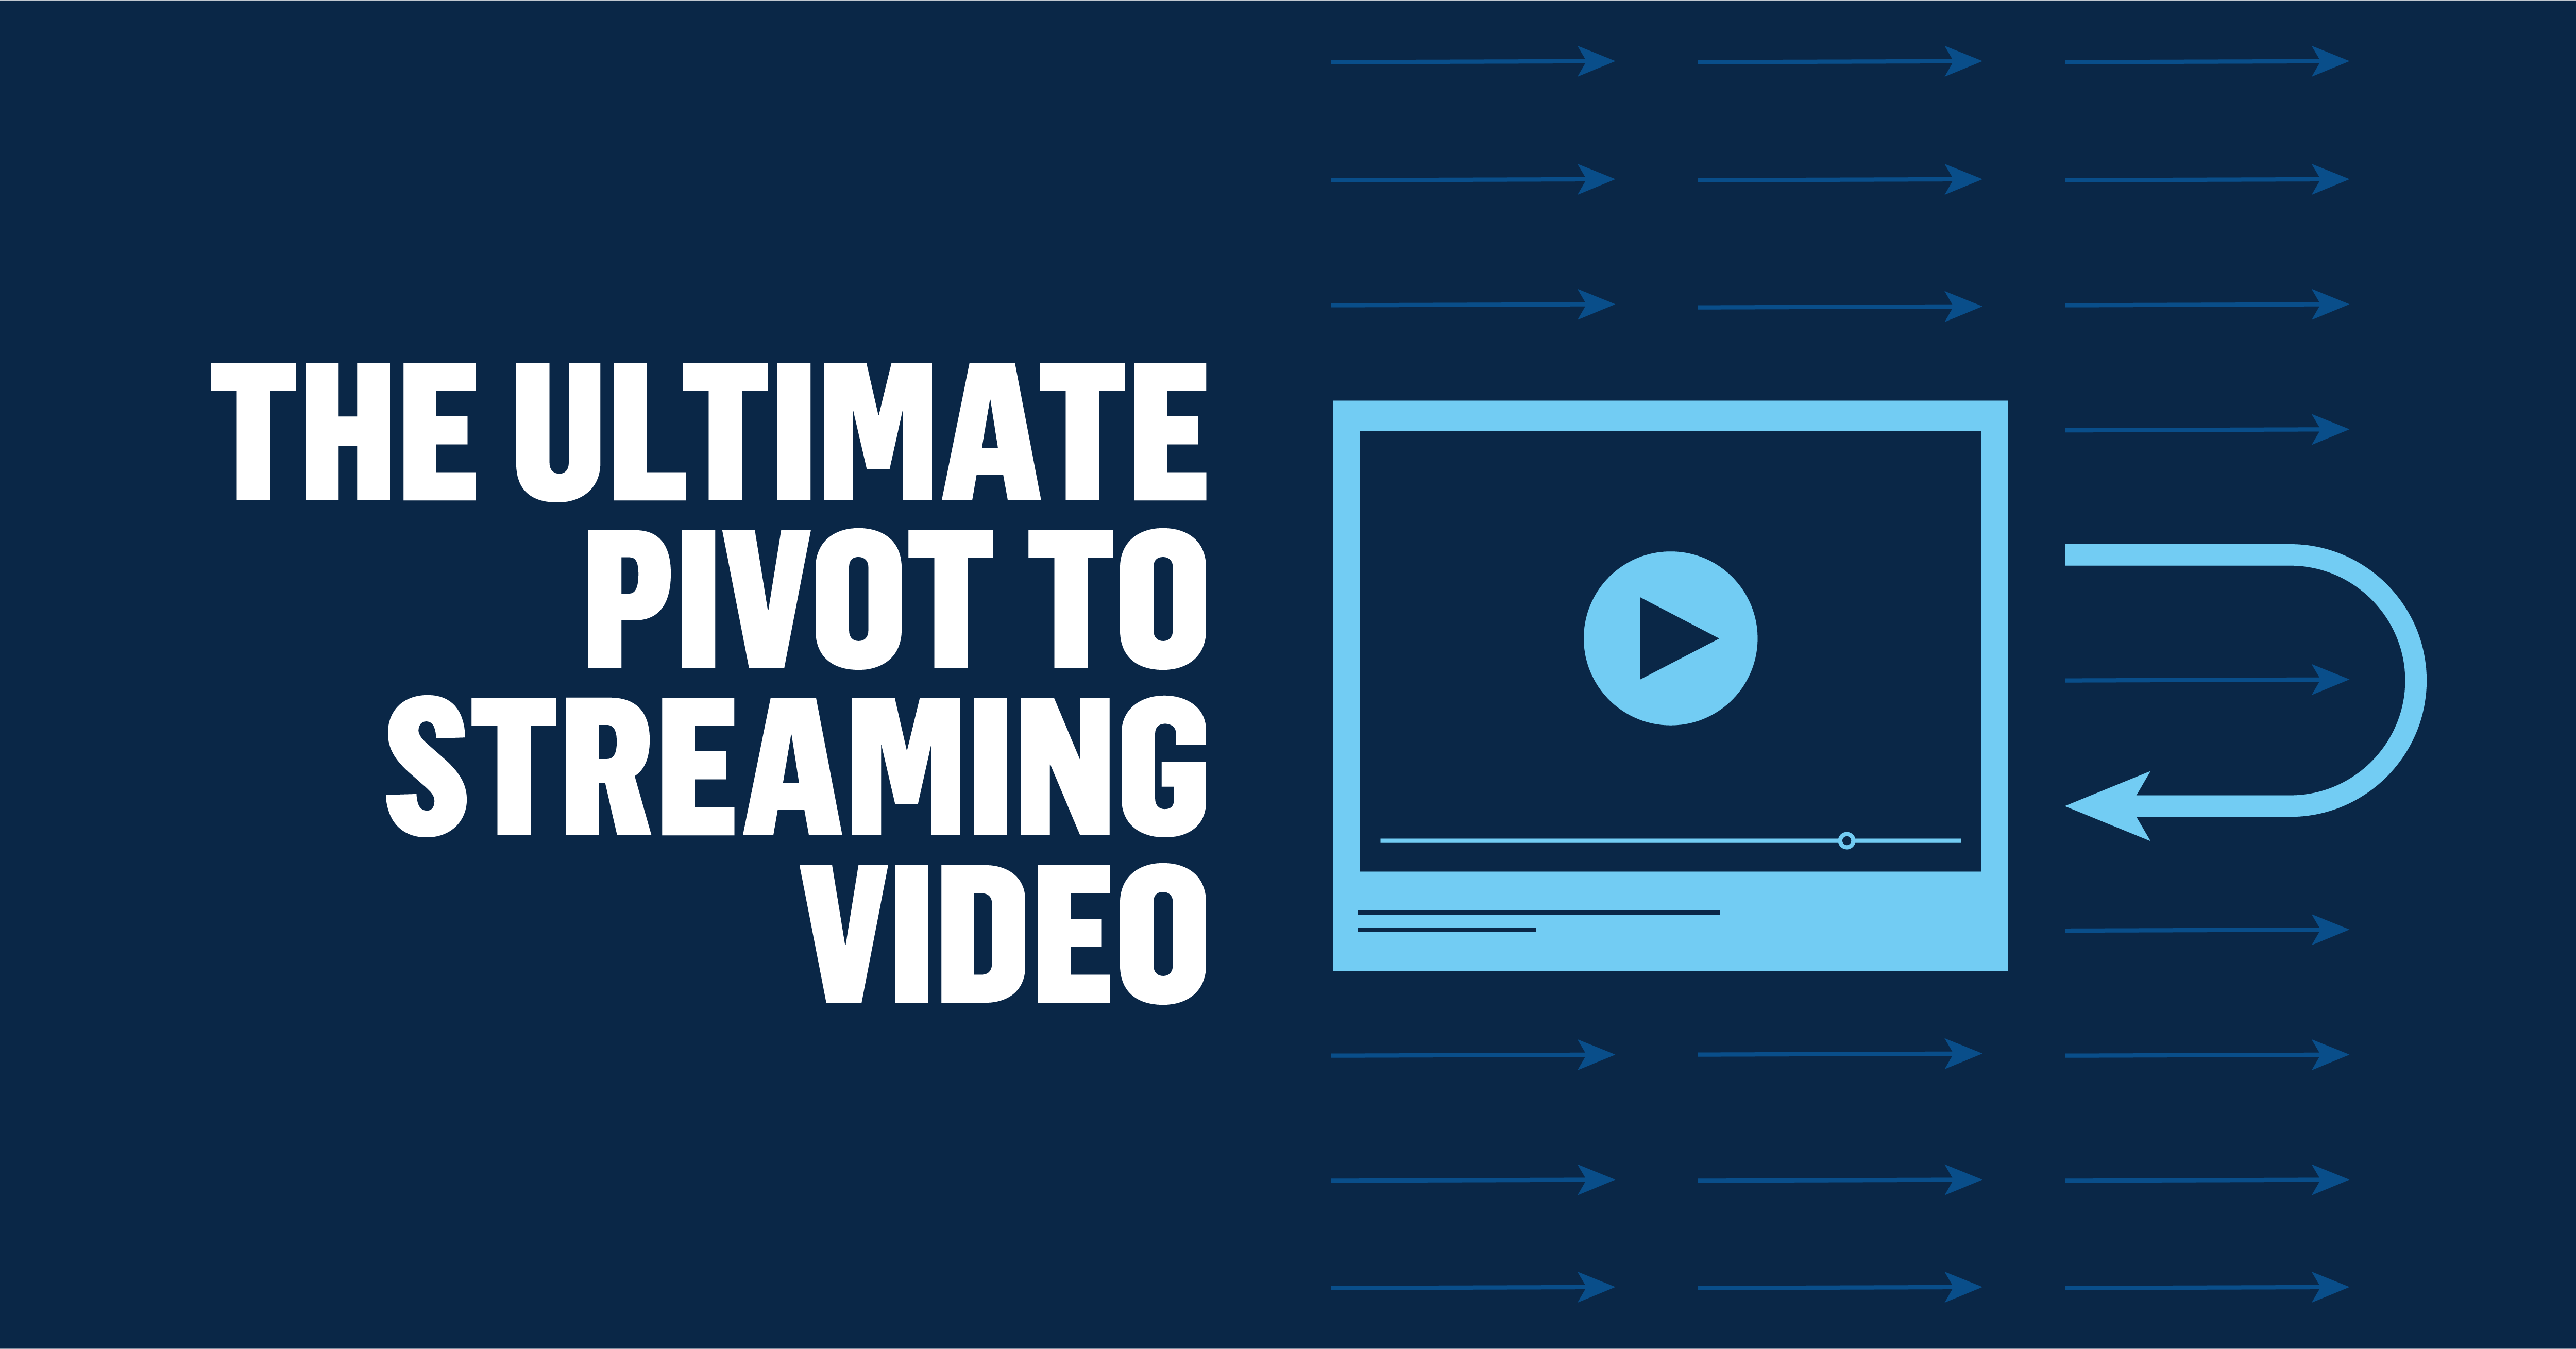 The Ultimate Pivot to Streaming Video